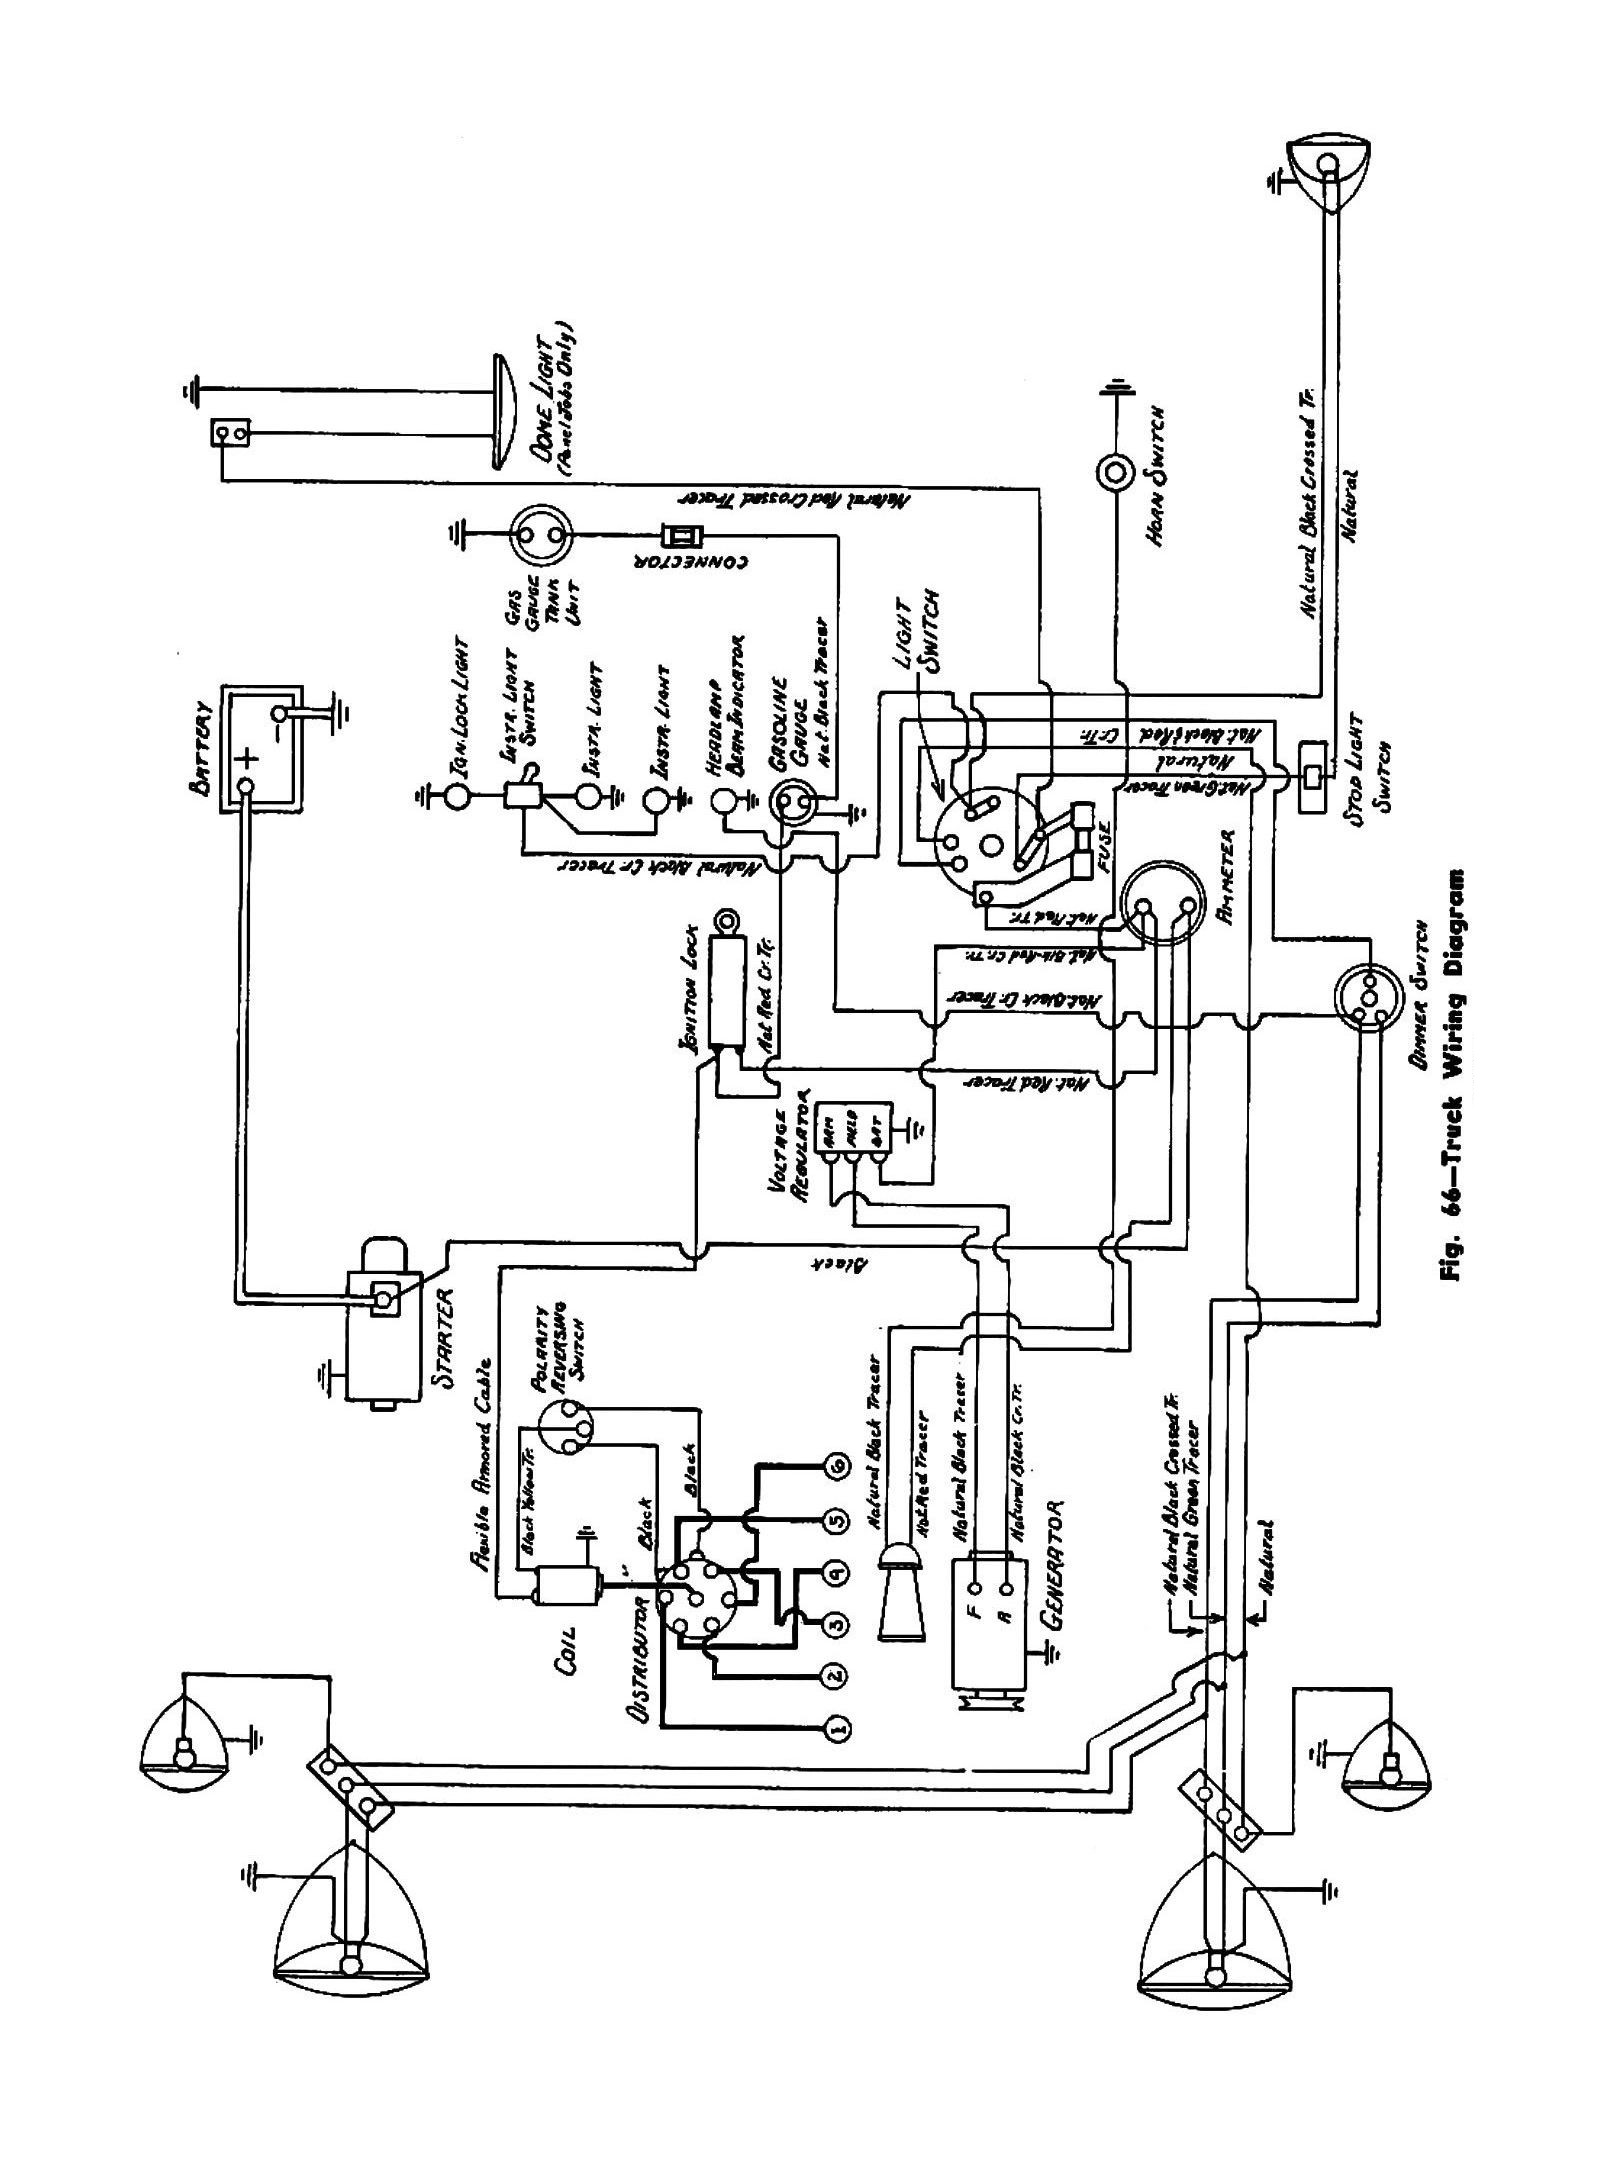 1953 oldsmobile wiring diagram 1953 wiring diagrams